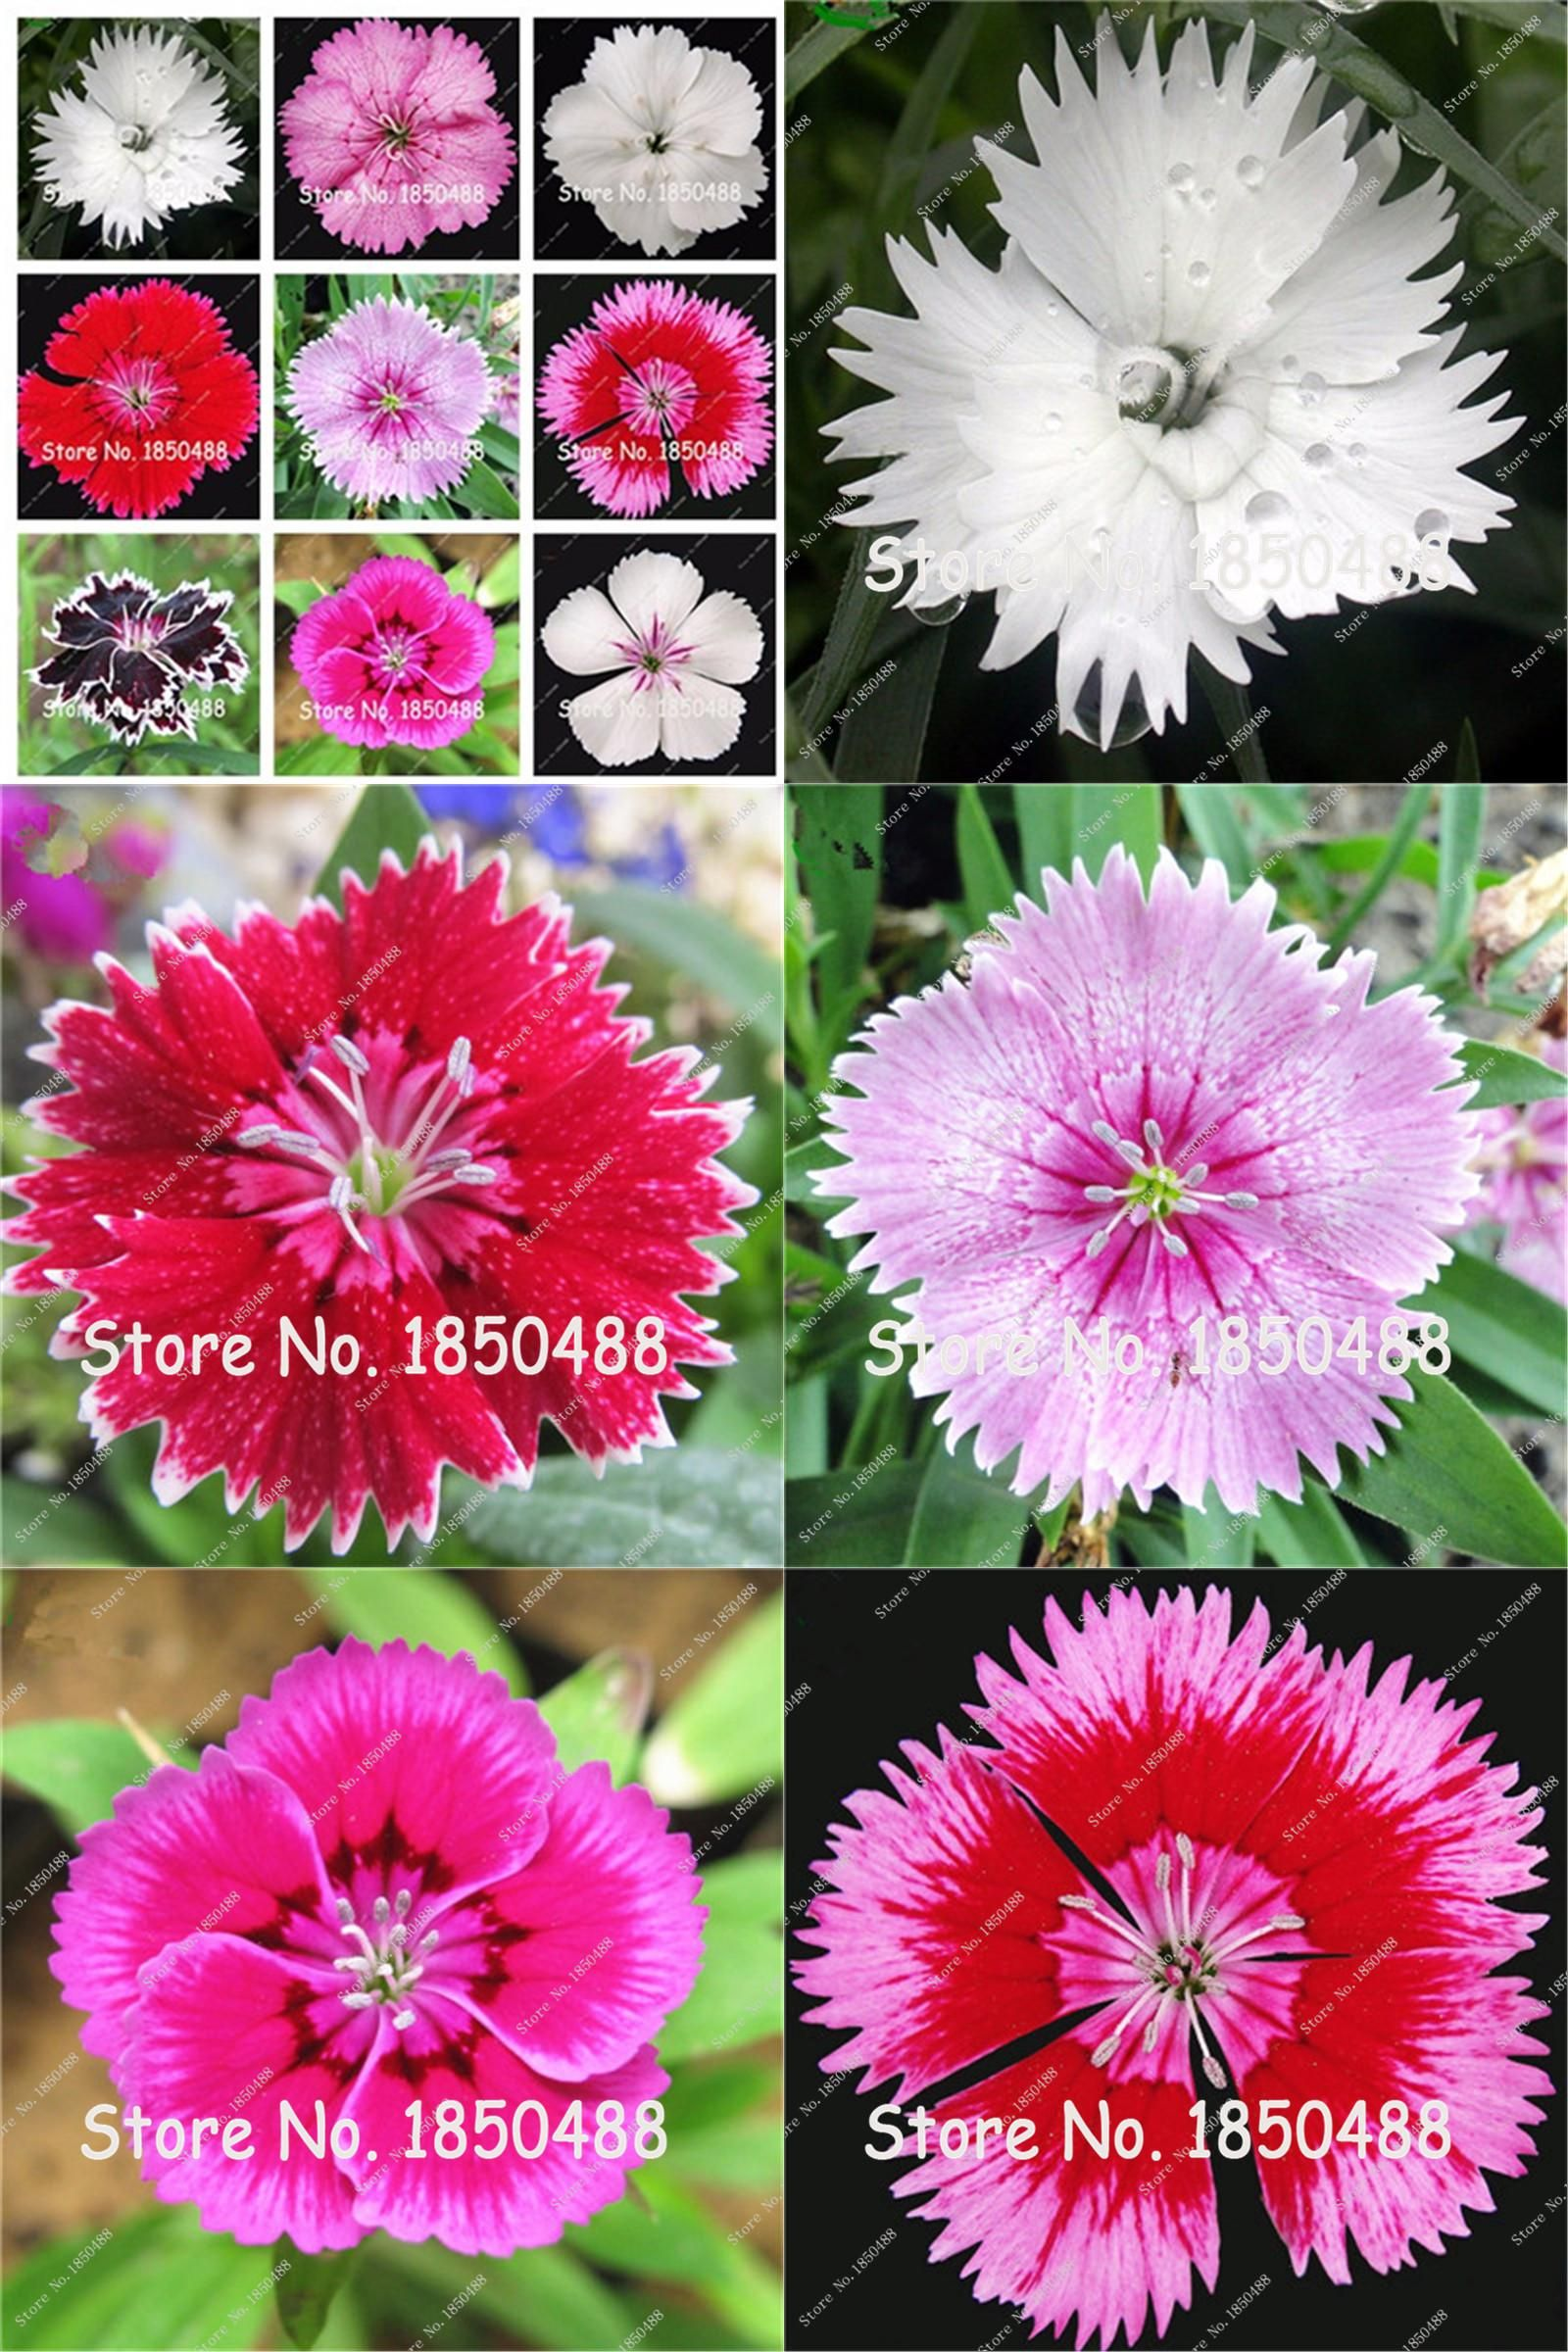 Visit to buy new arrival carnation seeds balcony potted courtyard cheap flower seeds buy quality carnation seeds directly from china garden plants suppliers new arrival izmirmasajfo